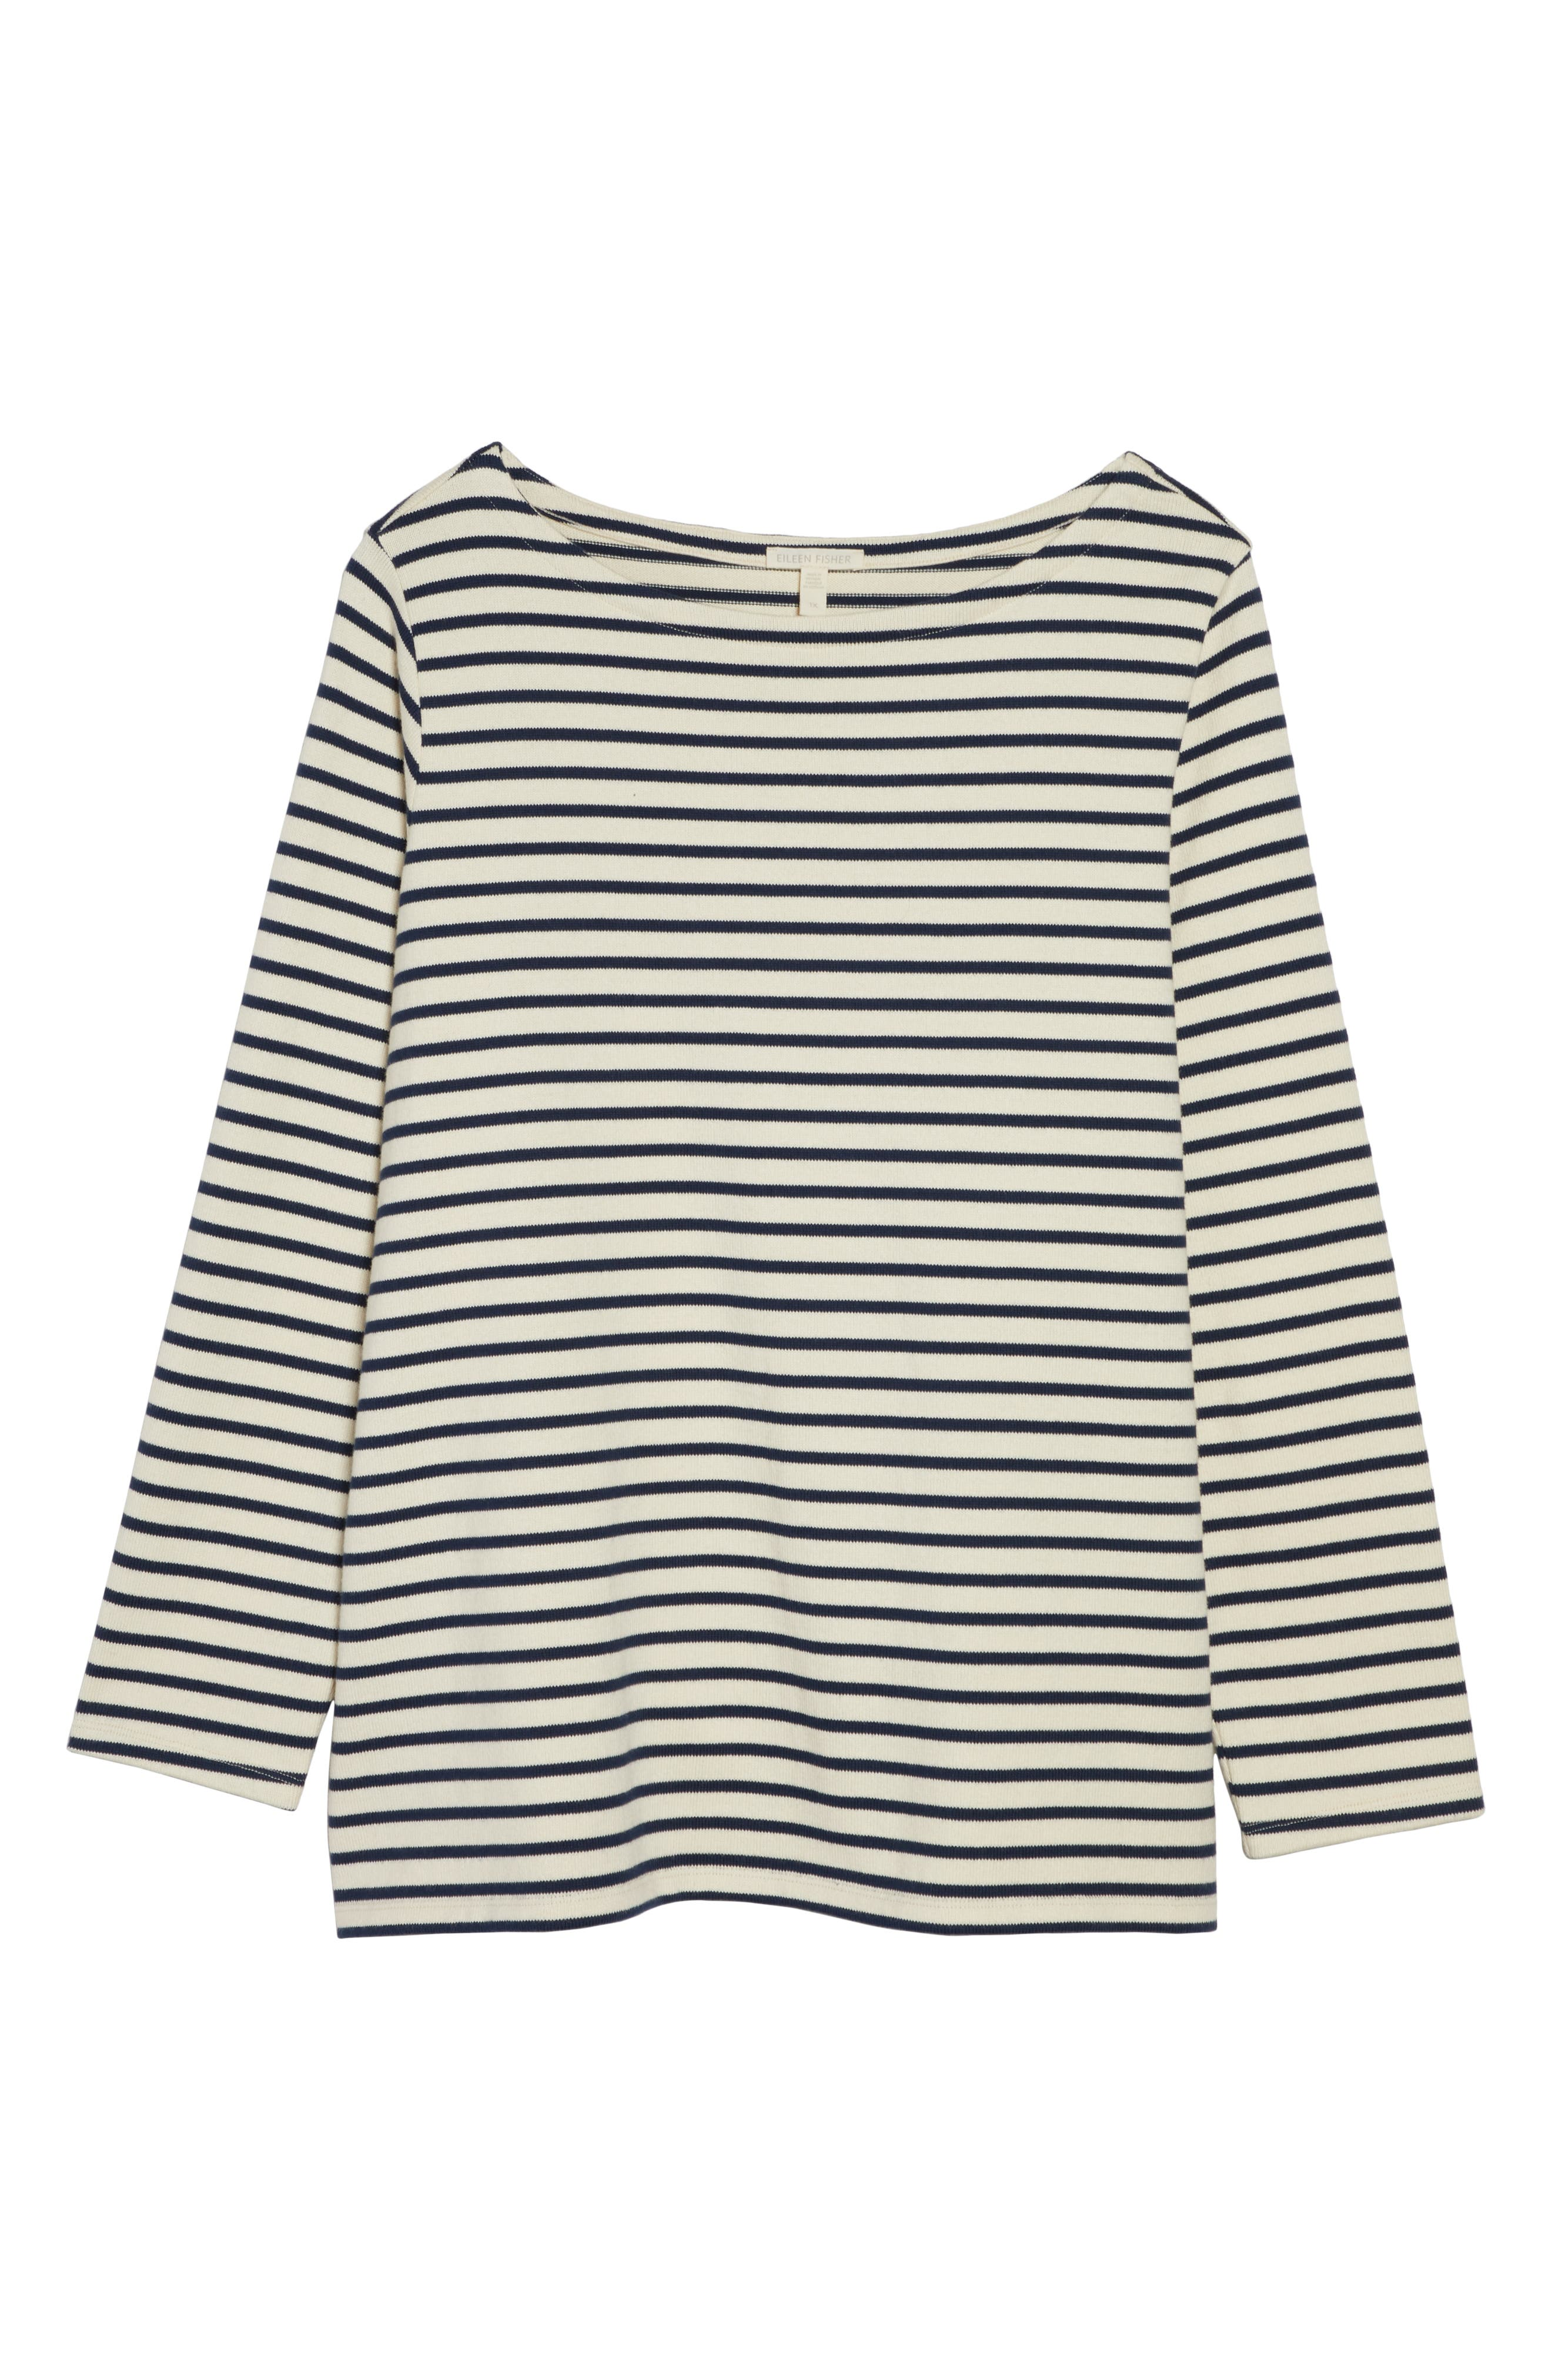 EILEEN FISHER, Seaside Stripe Bateau Neck Tunic, Alternate thumbnail 6, color, 103